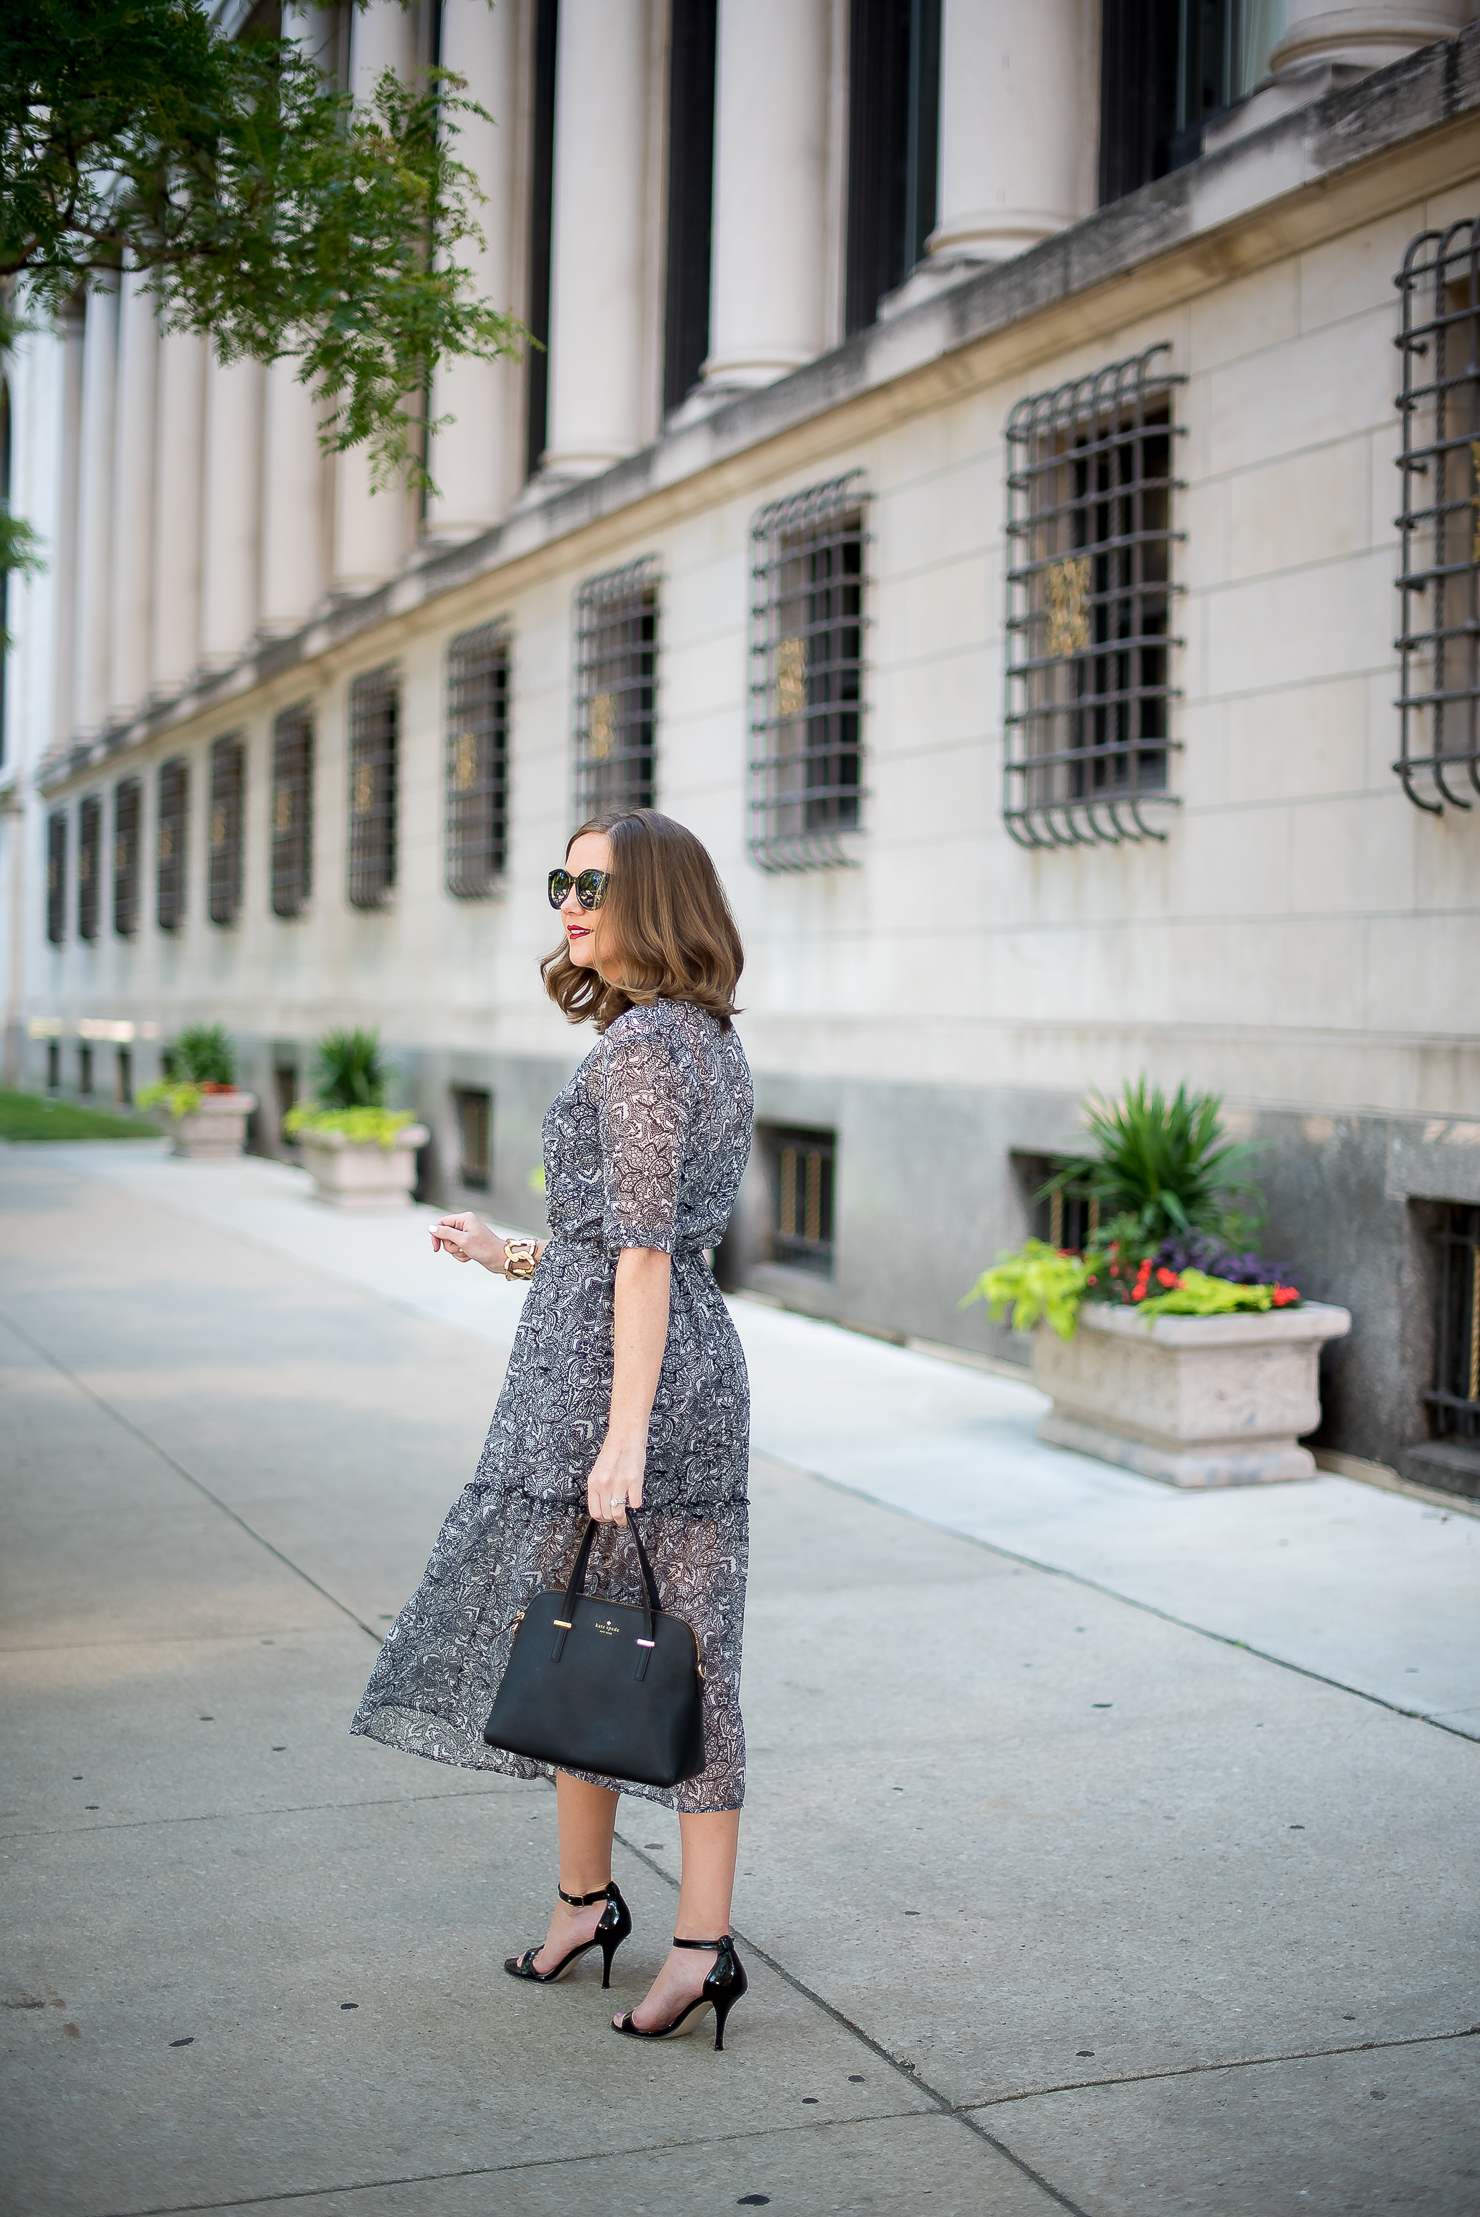 target-who-what-wear-printed-midi-dress-classic-feminine-ladylike-kate-spade-cedar-maise-gold-details-chicago-drake-hotel-22